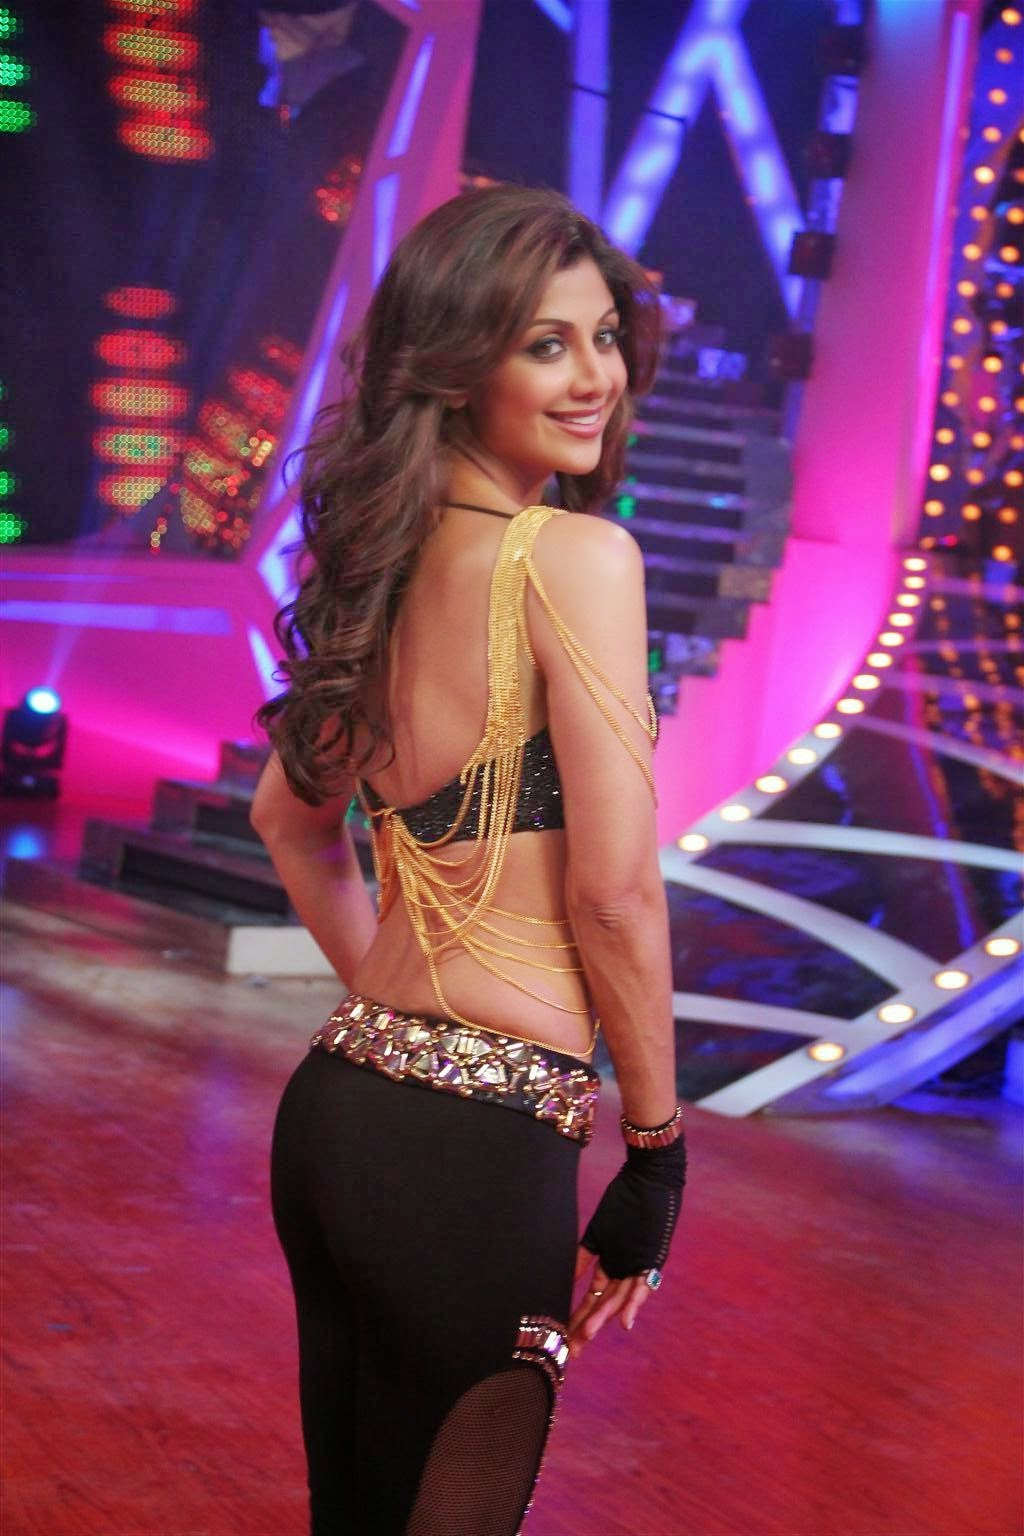 Shilpa Shetty ass close-up pics in transparent legins saree upskirt hd pics